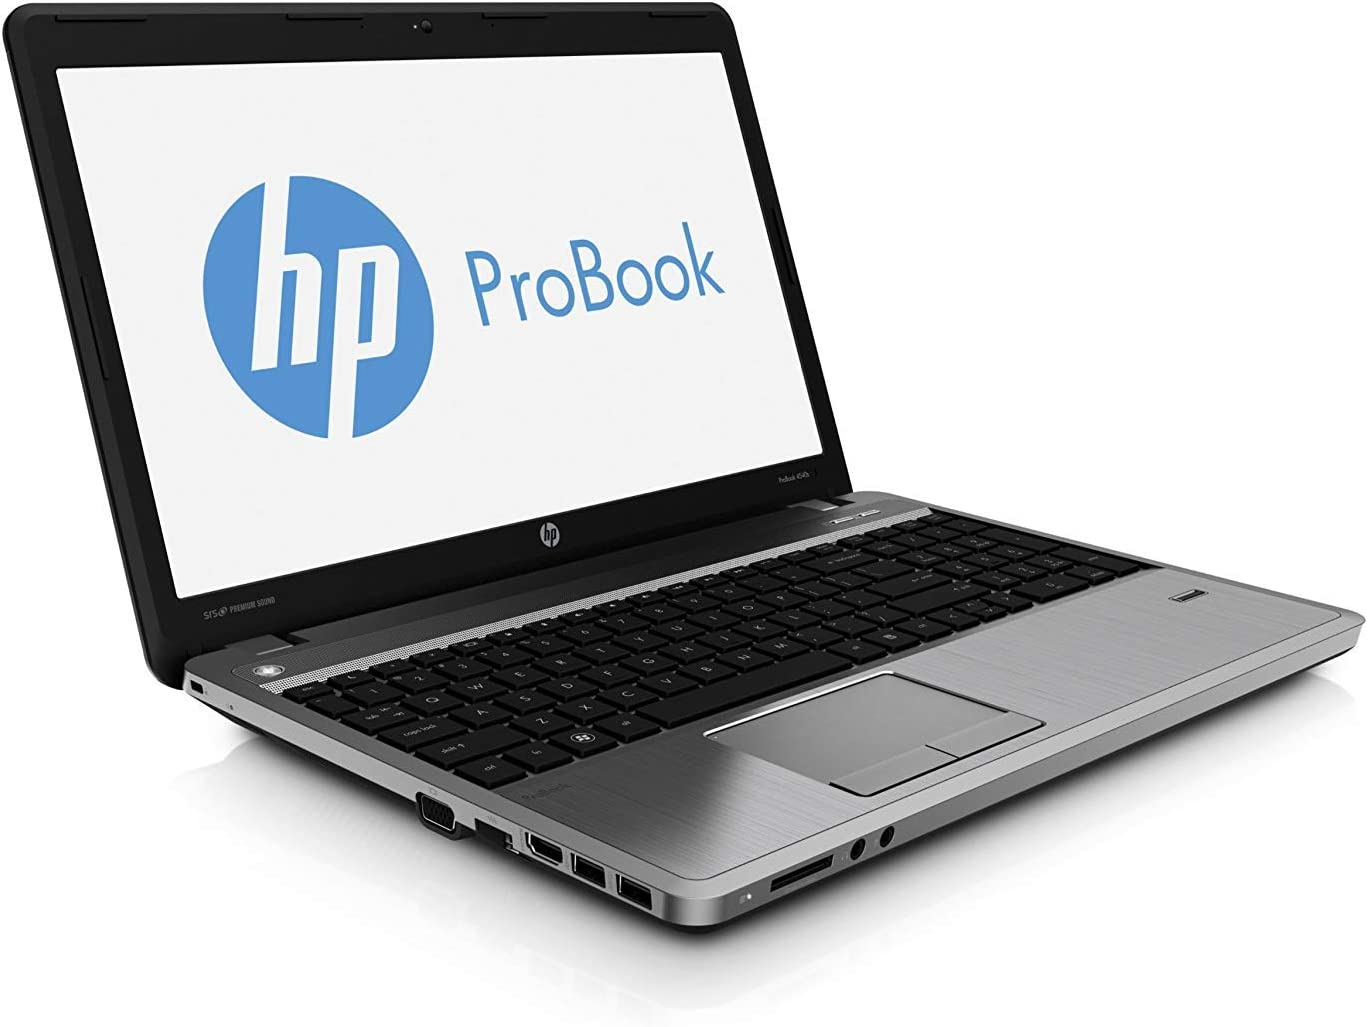 HP 4540s i5-3210M 16-Inch Notebook (500 GB, 4 GB SO-DIMM DDR3 Windows 7, Intel HD Graphics 4000)